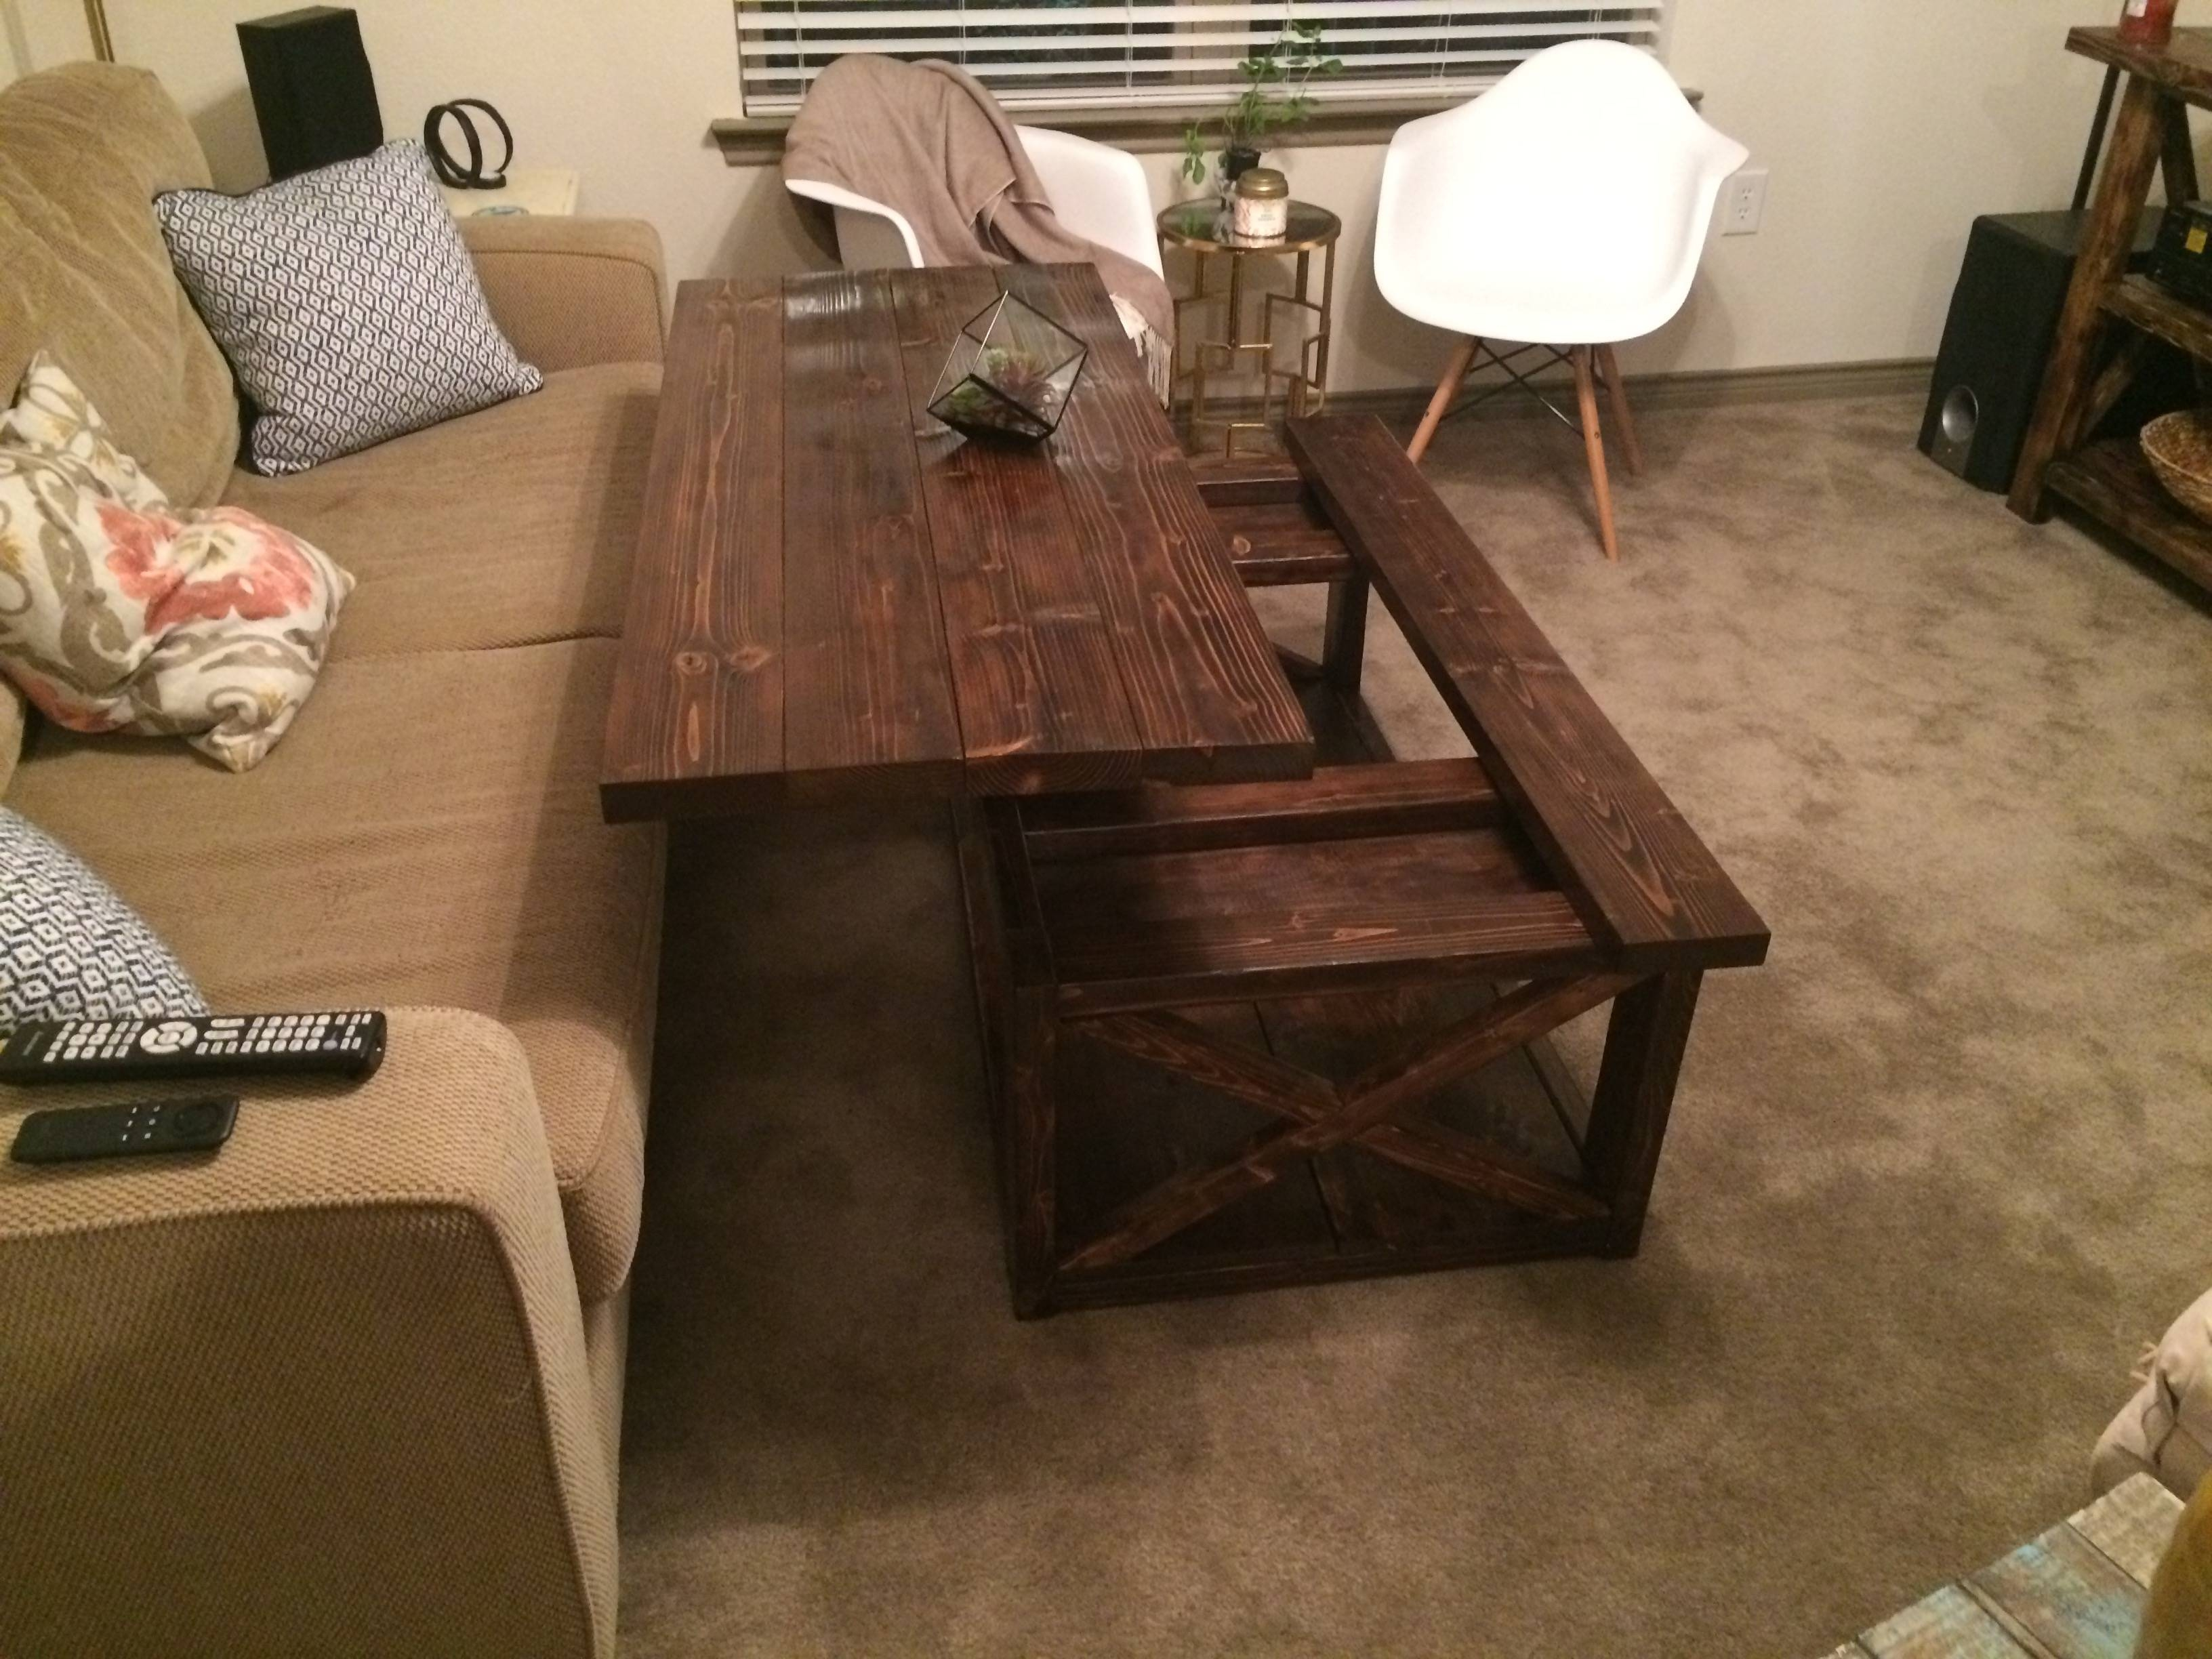 Ana White | Diy Lift Top Coffee Table - Rustic X Style - Diy Projects pertaining to Rustic Style Coffee Tables (Image 1 of 30)